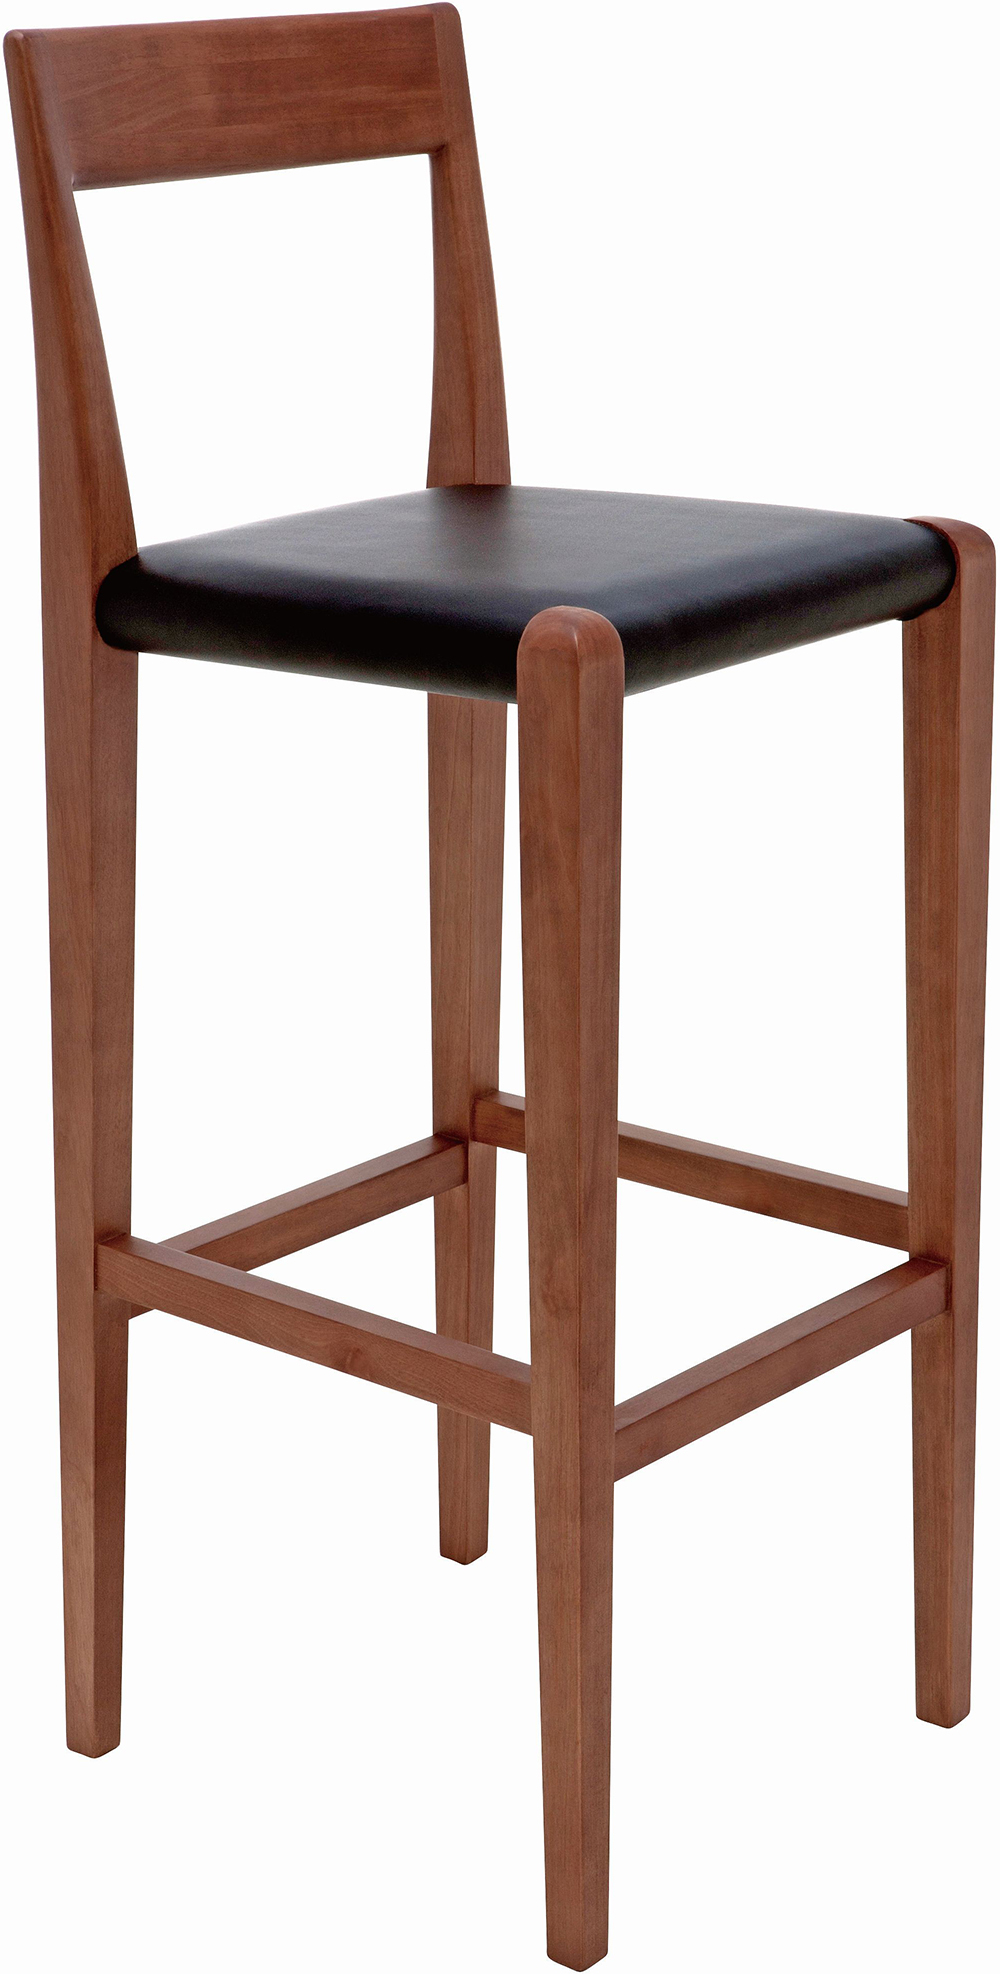 The Nuevo Living Ameri Bar Stool Is Made With Solid Birch Wood With Walnut Stain and Black Leather Upholstery.